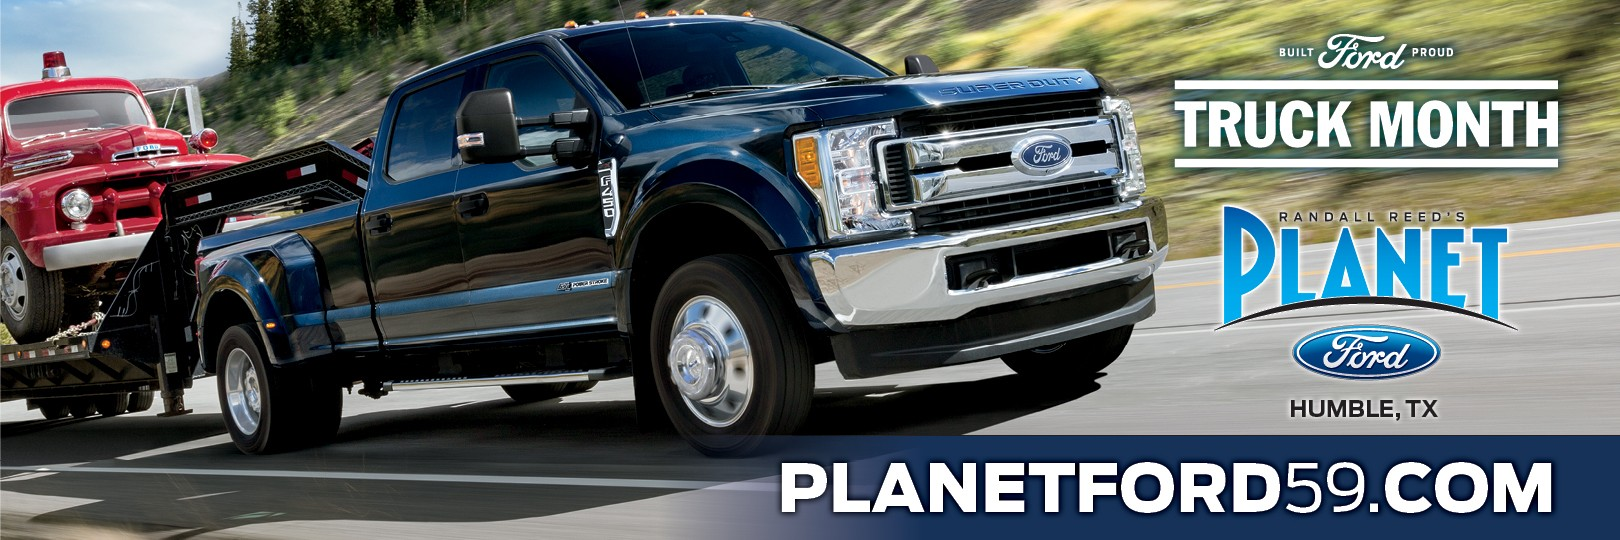 Planet Ford Humble Tx >> Randall Reed S Planet Ford Humble Linkedin